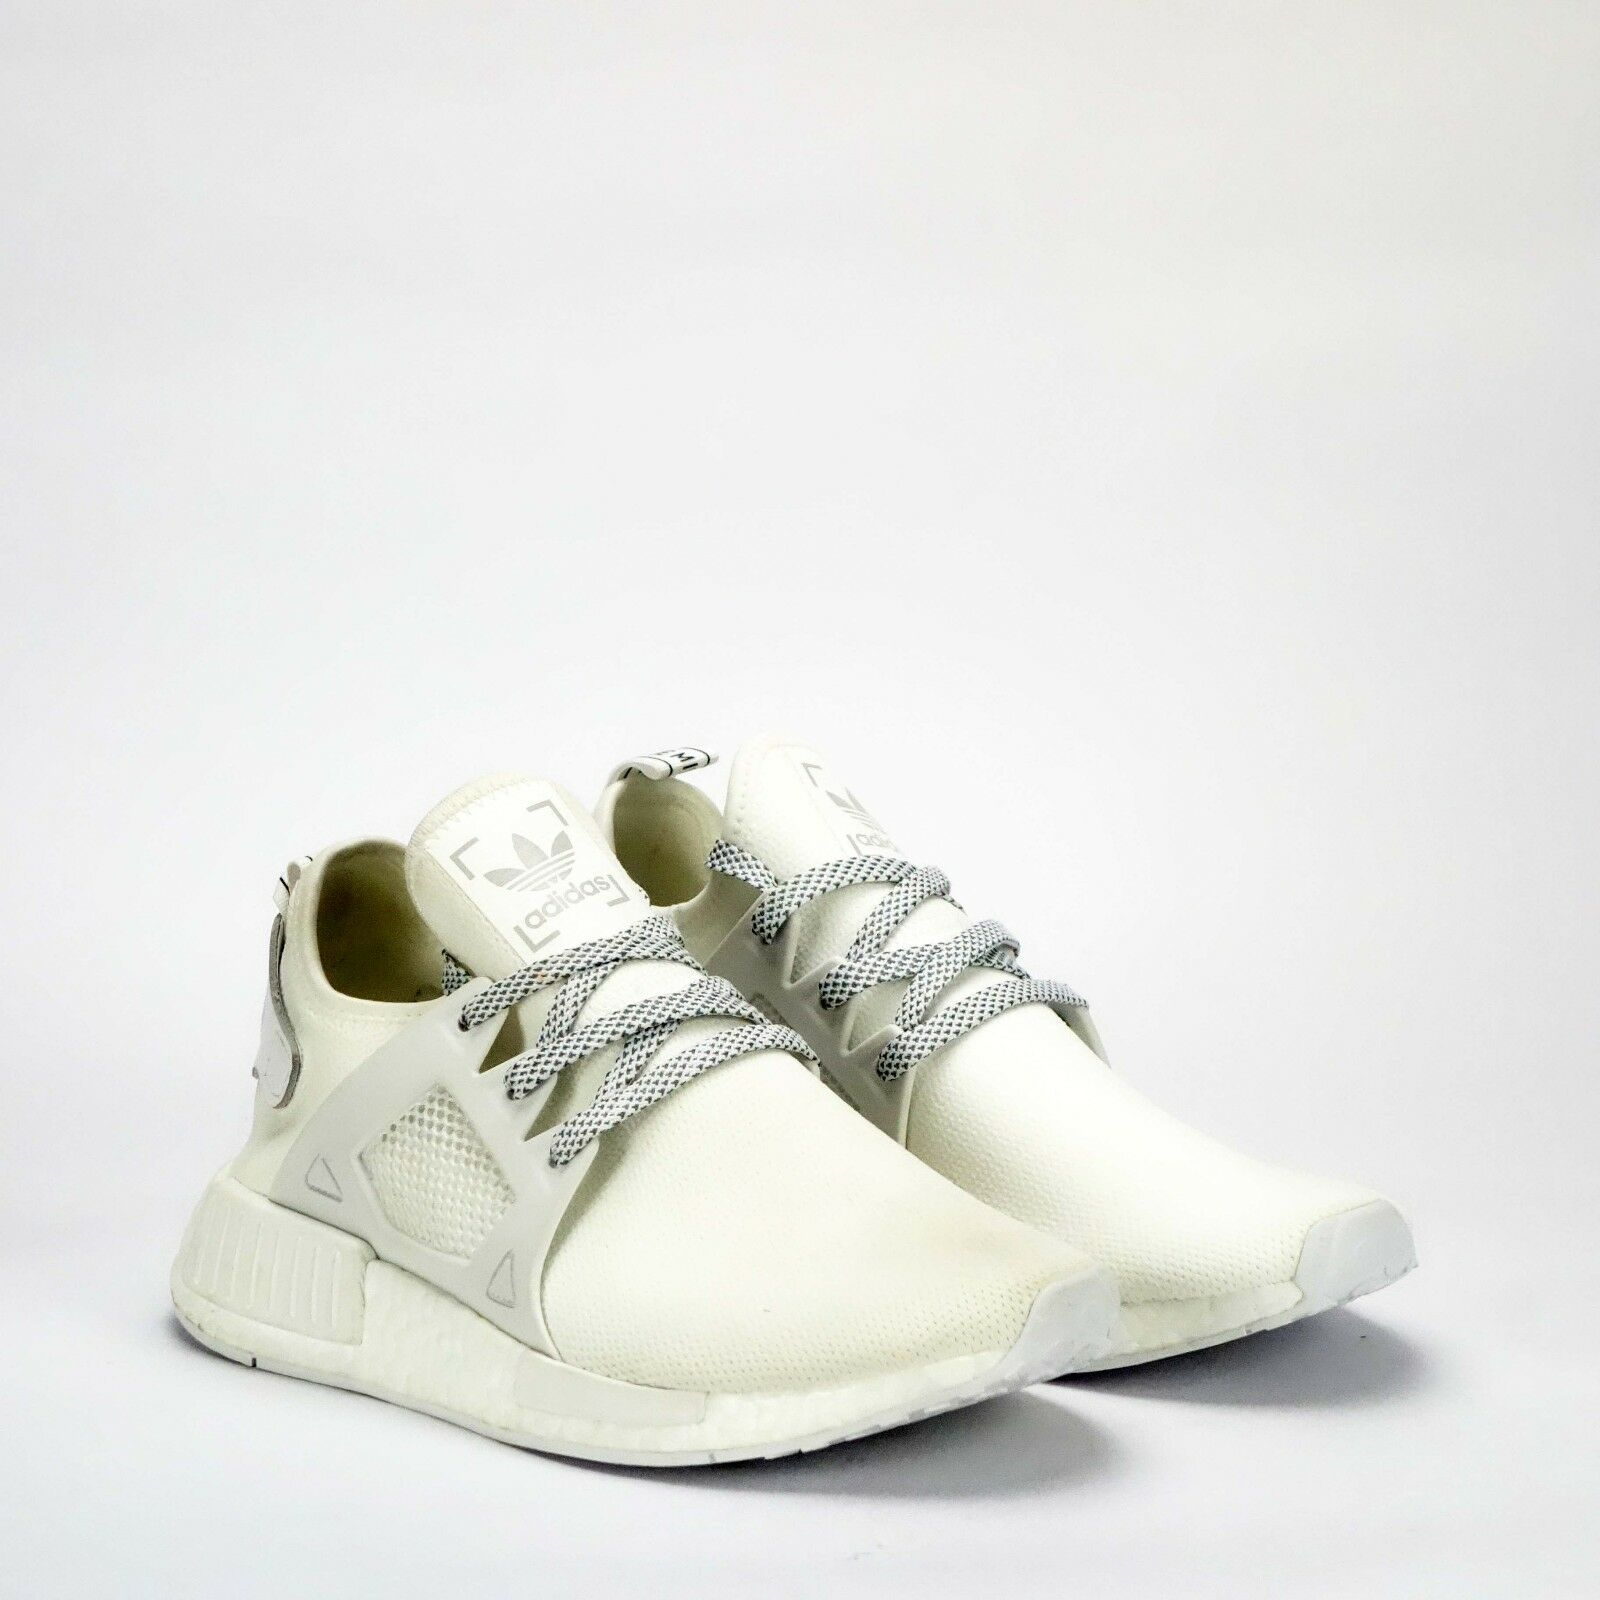 adidas Originals NMD XR1 hommes Chaussures in blanc Ex Display